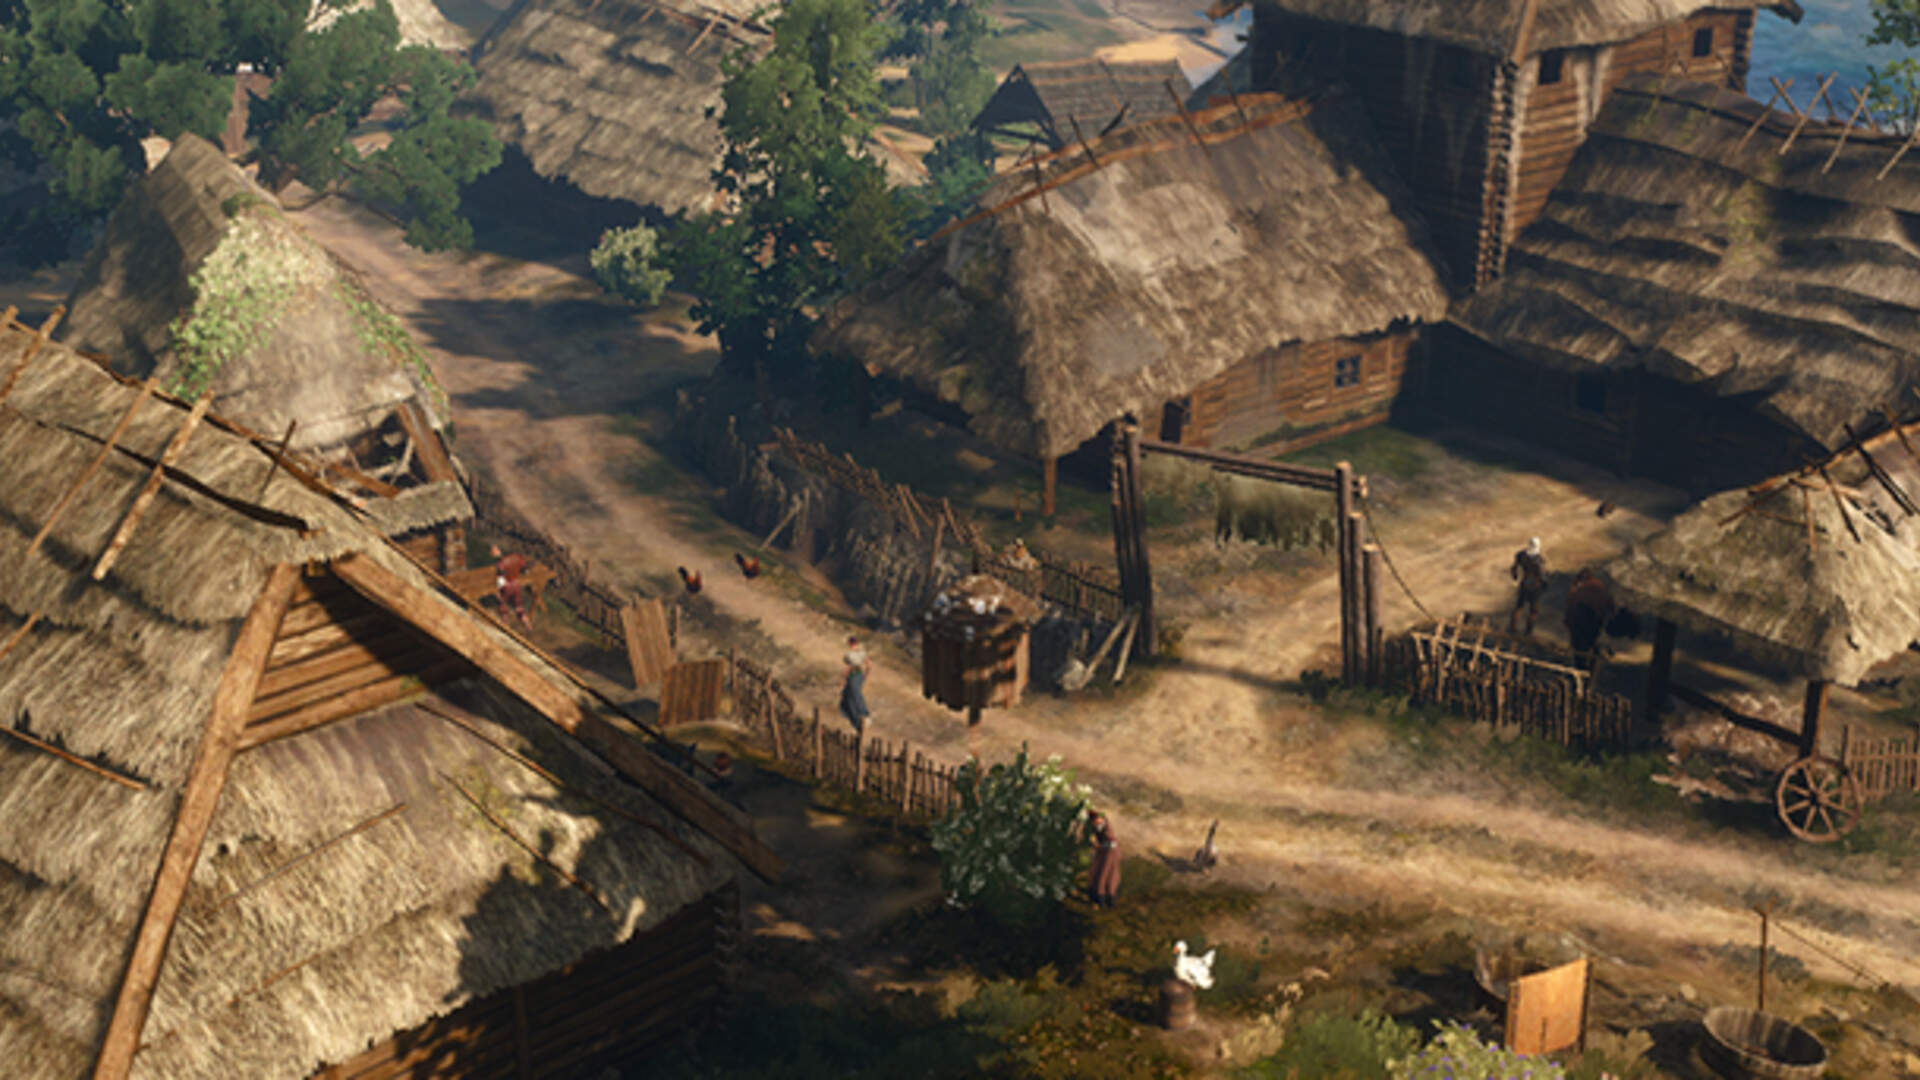 How White Orchard Brilliantly Sets the Stage for Everything to Come in The Witcher 3